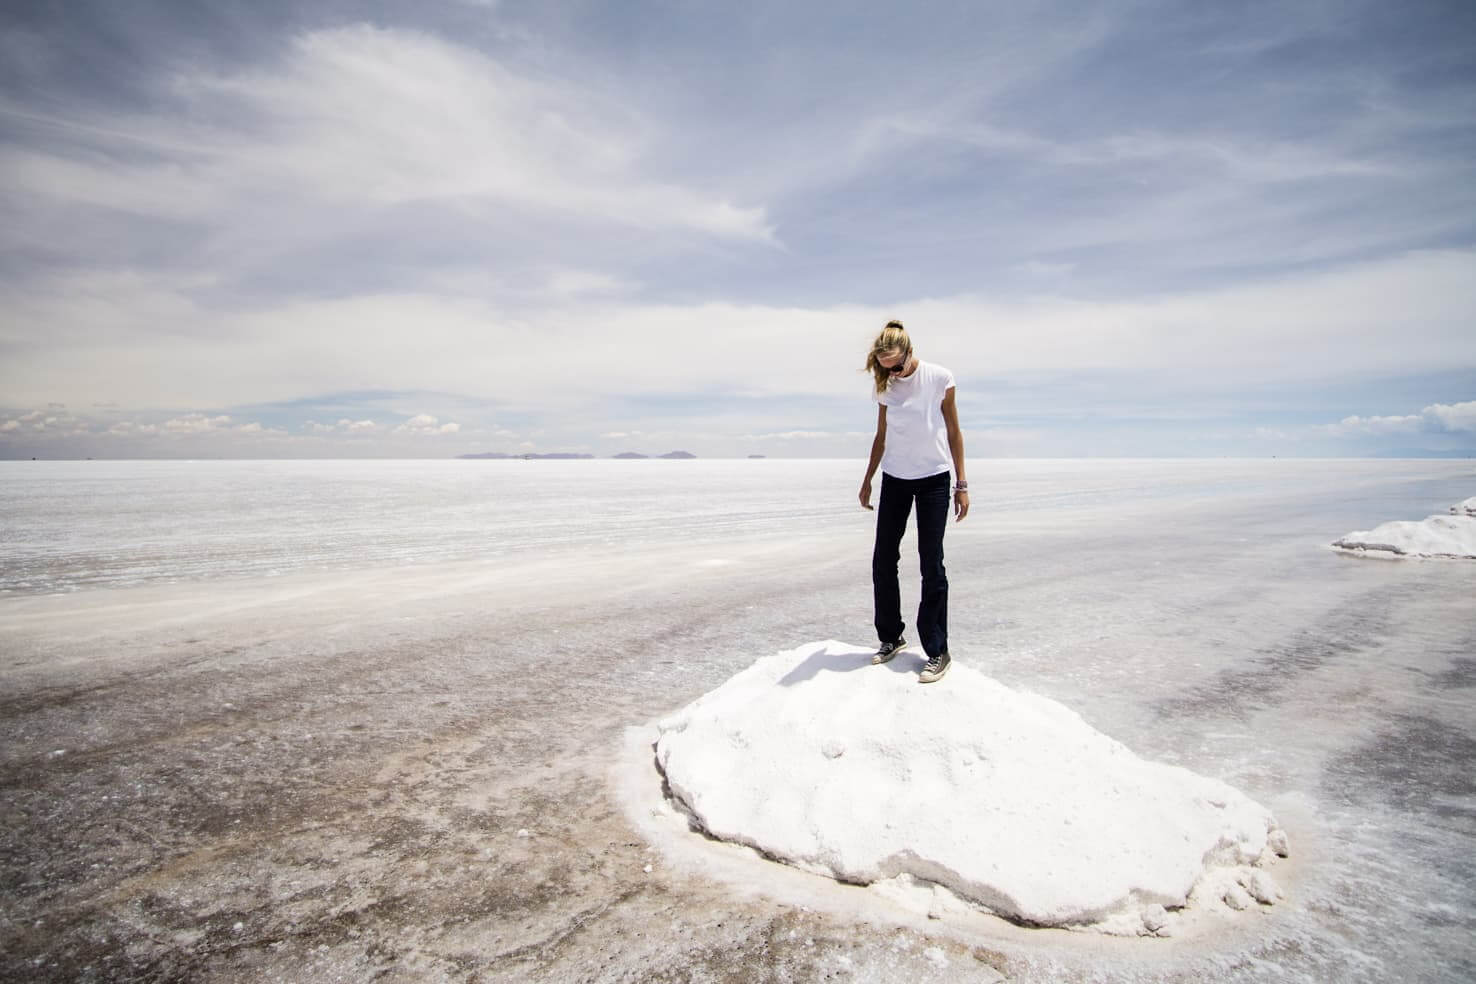 Salt Flats in Bolivia - a complete guide to Salar de Uyuni tour